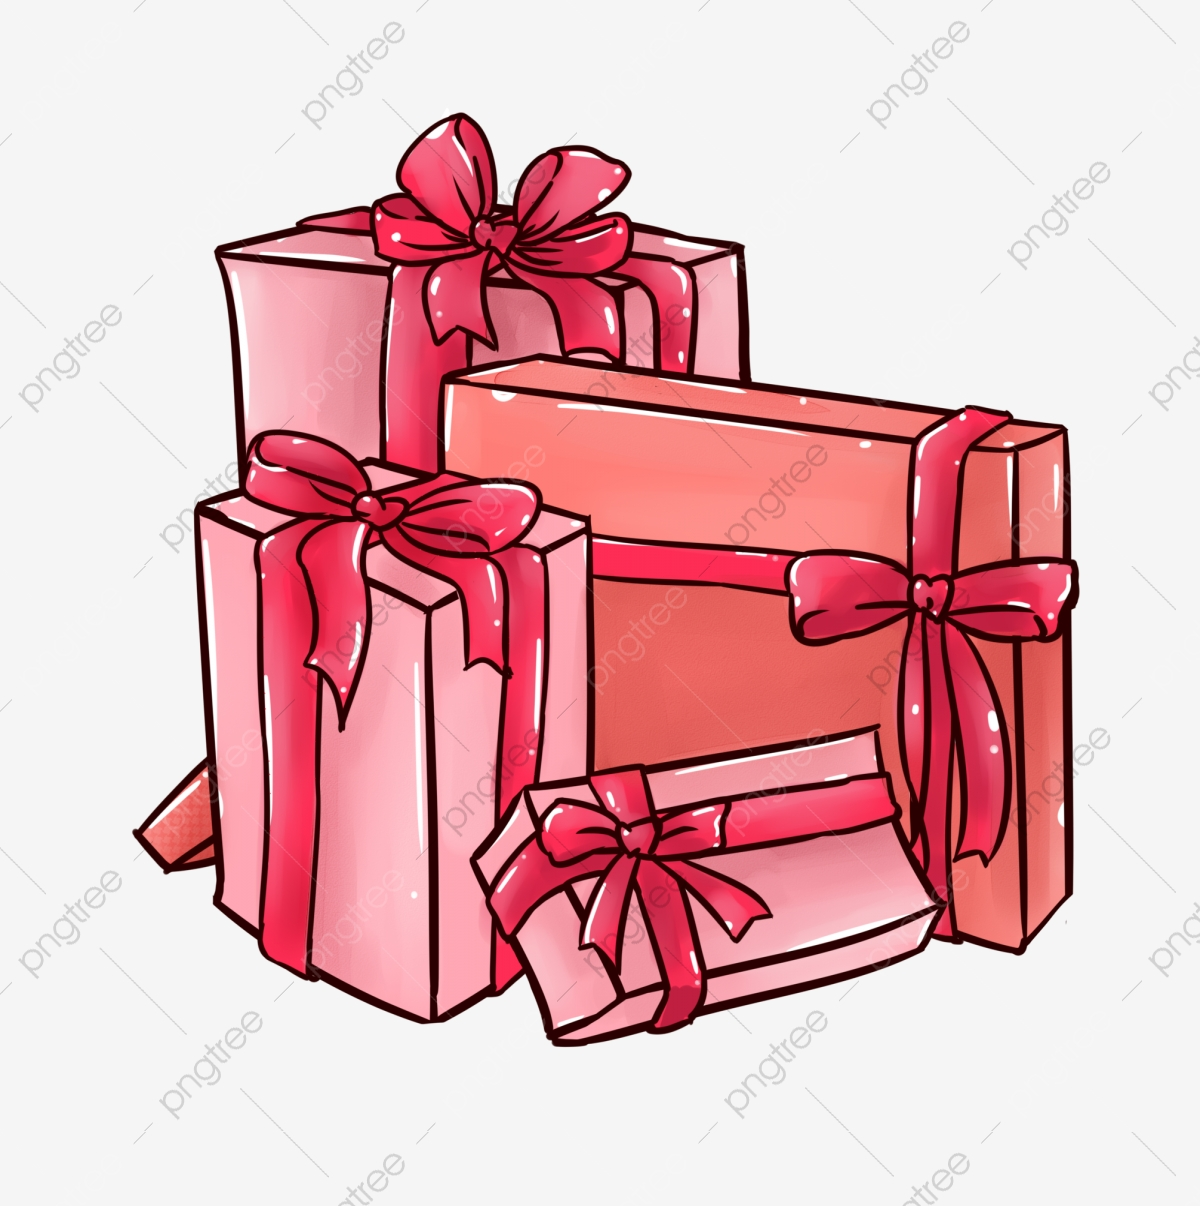 Gift clipart bunch. A of presents holiday